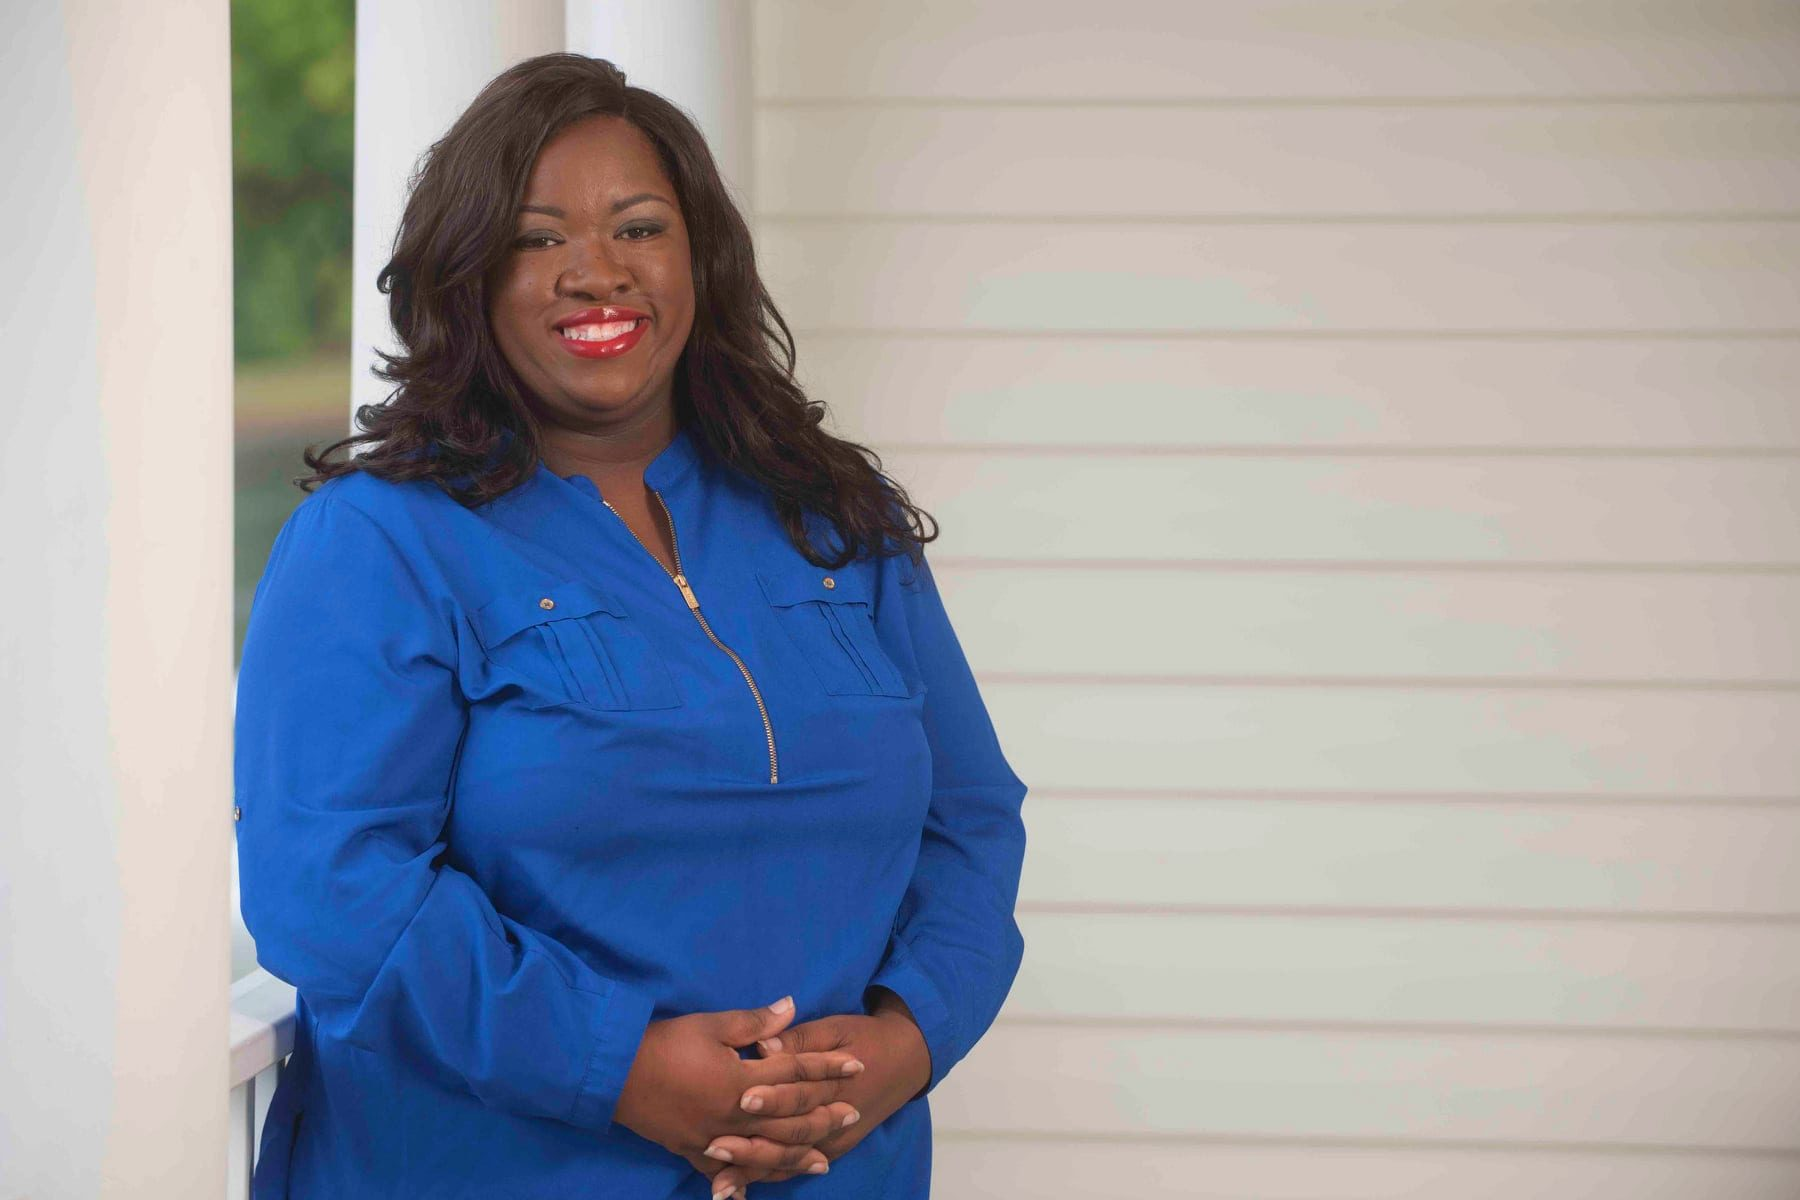 Candi King, photographed here in a blue outfit, won a special election the Virginia House of Delegates, bringing the total number of women in the state's General Assembly to 42, a record.